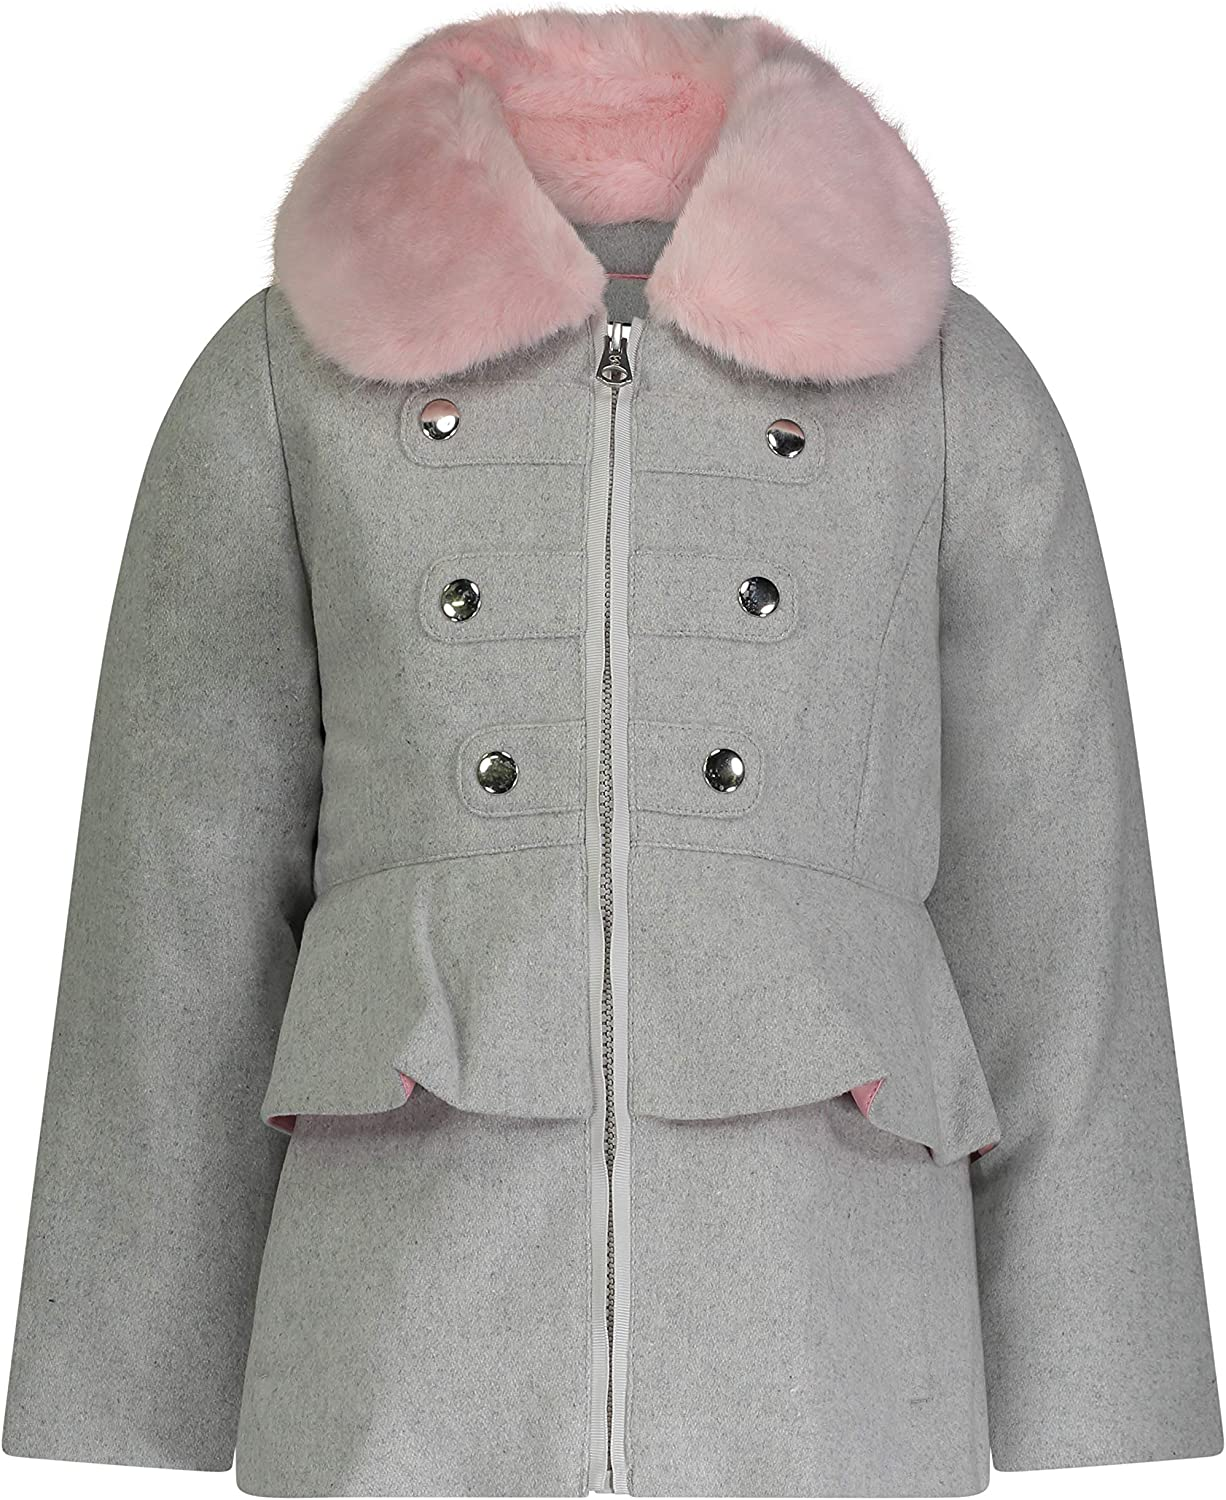 Jessica Simpson Max Fashion 58% OFF Girls' Dress Coat Collar Cozy Jacket with